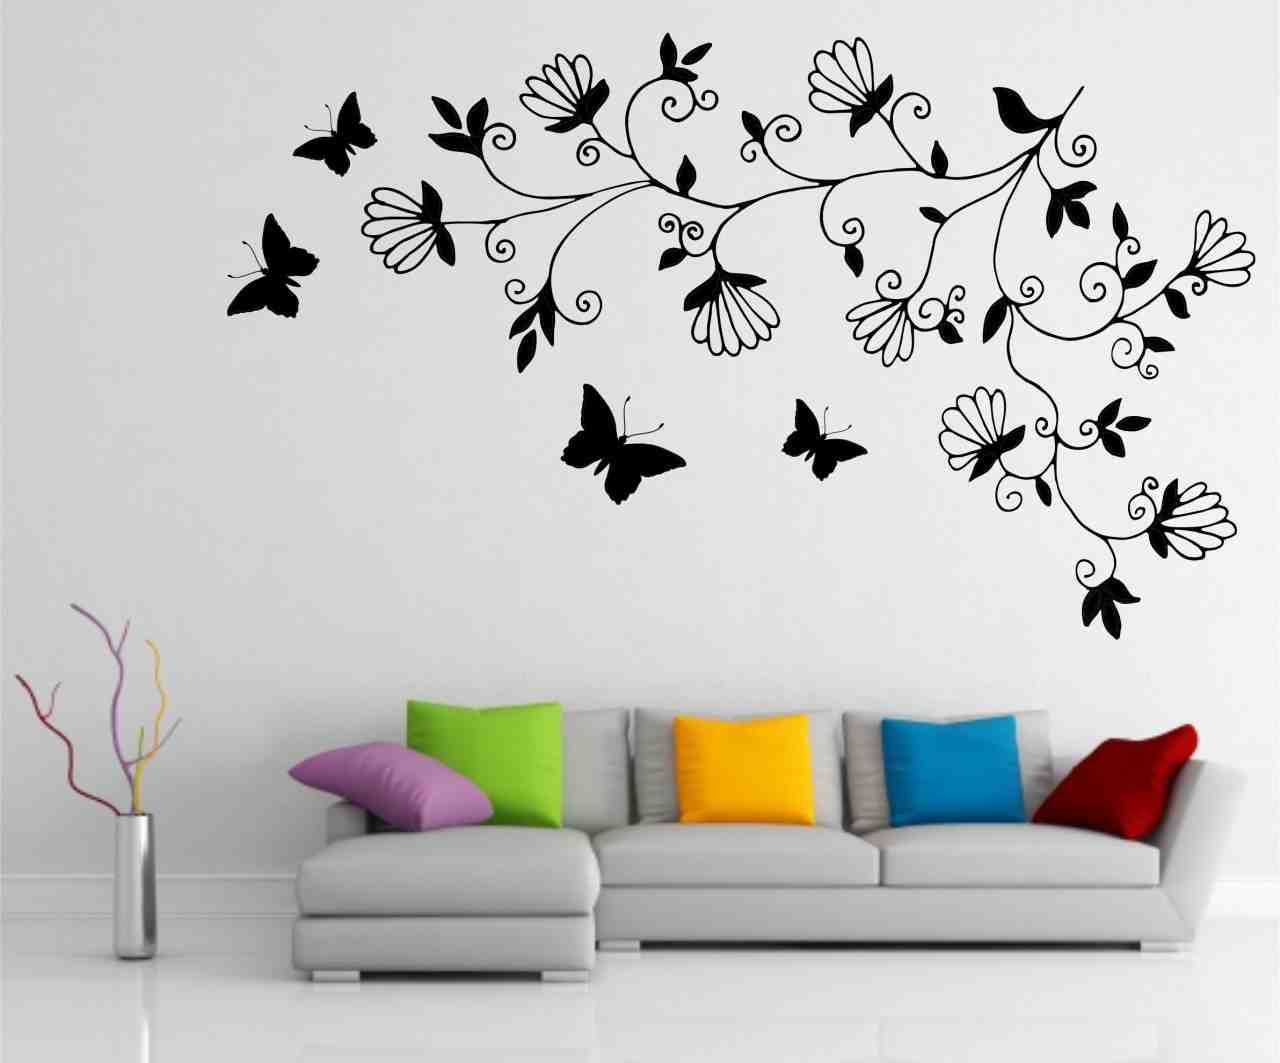 Wall Paintings For Living Room Simple Wall Paintings Wall Paint Designs Simple Wall Art